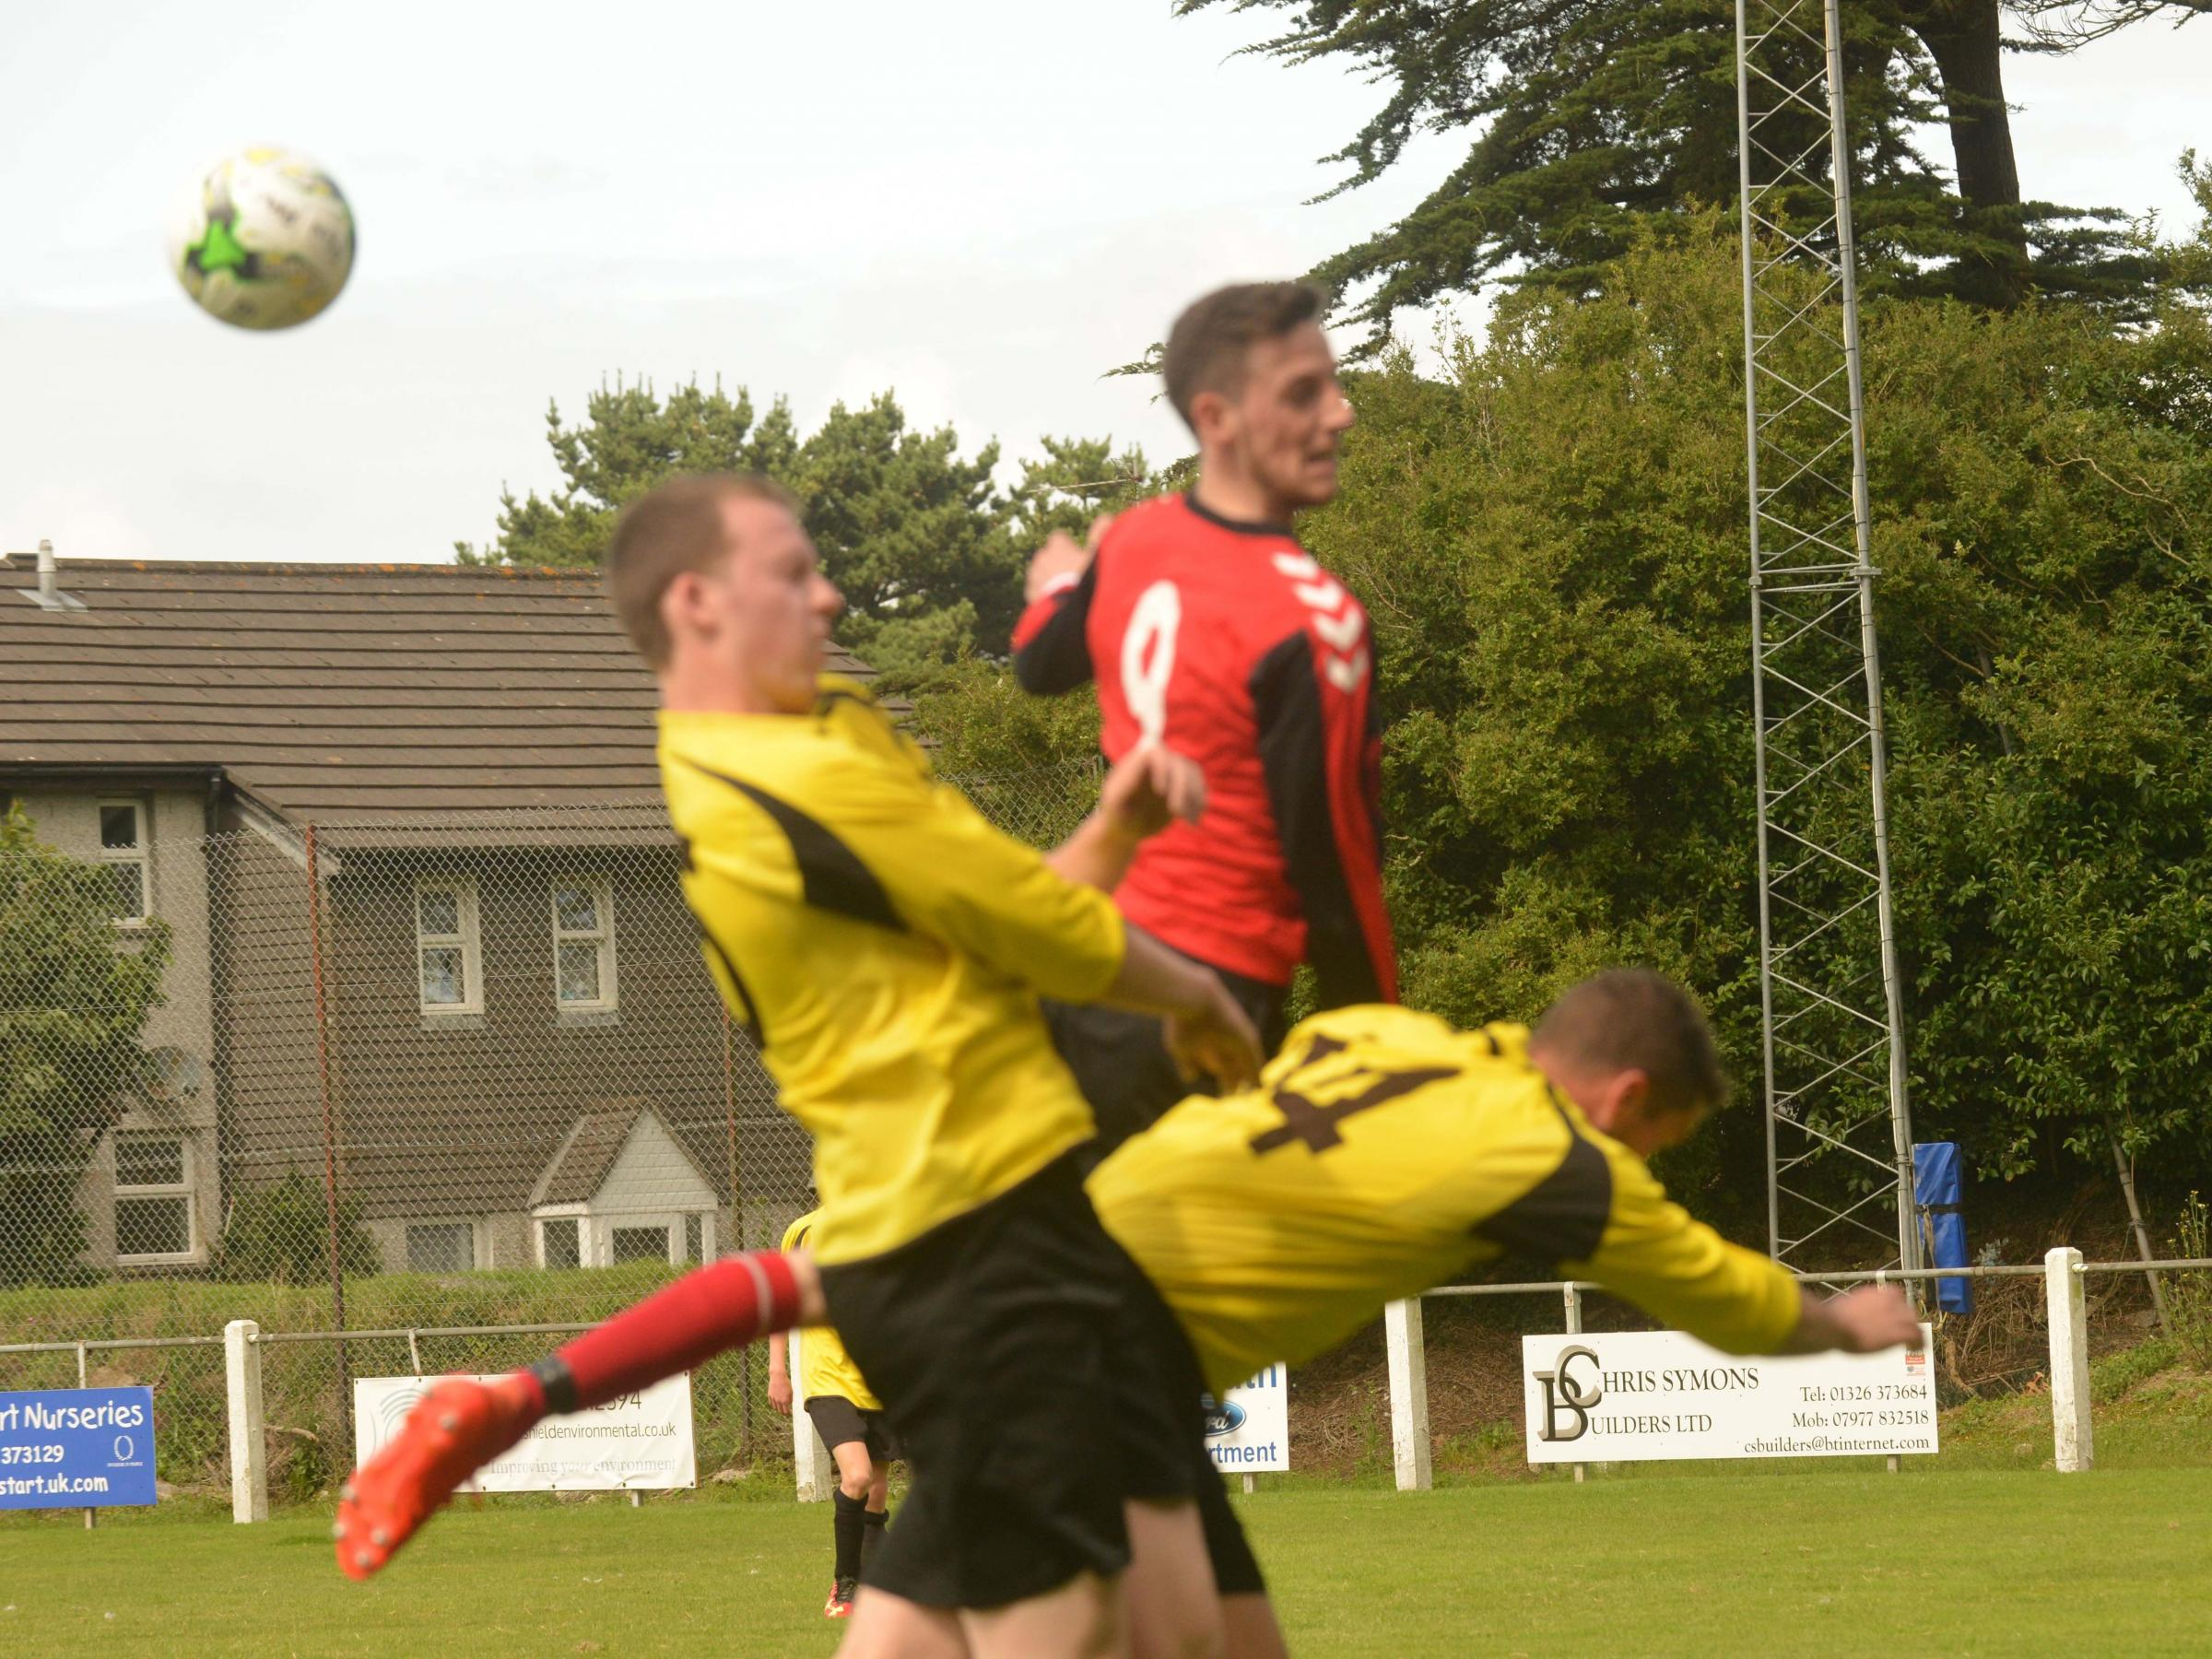 Action from Penryn Reserves against St Keverne in the Trelawny League on Saturday